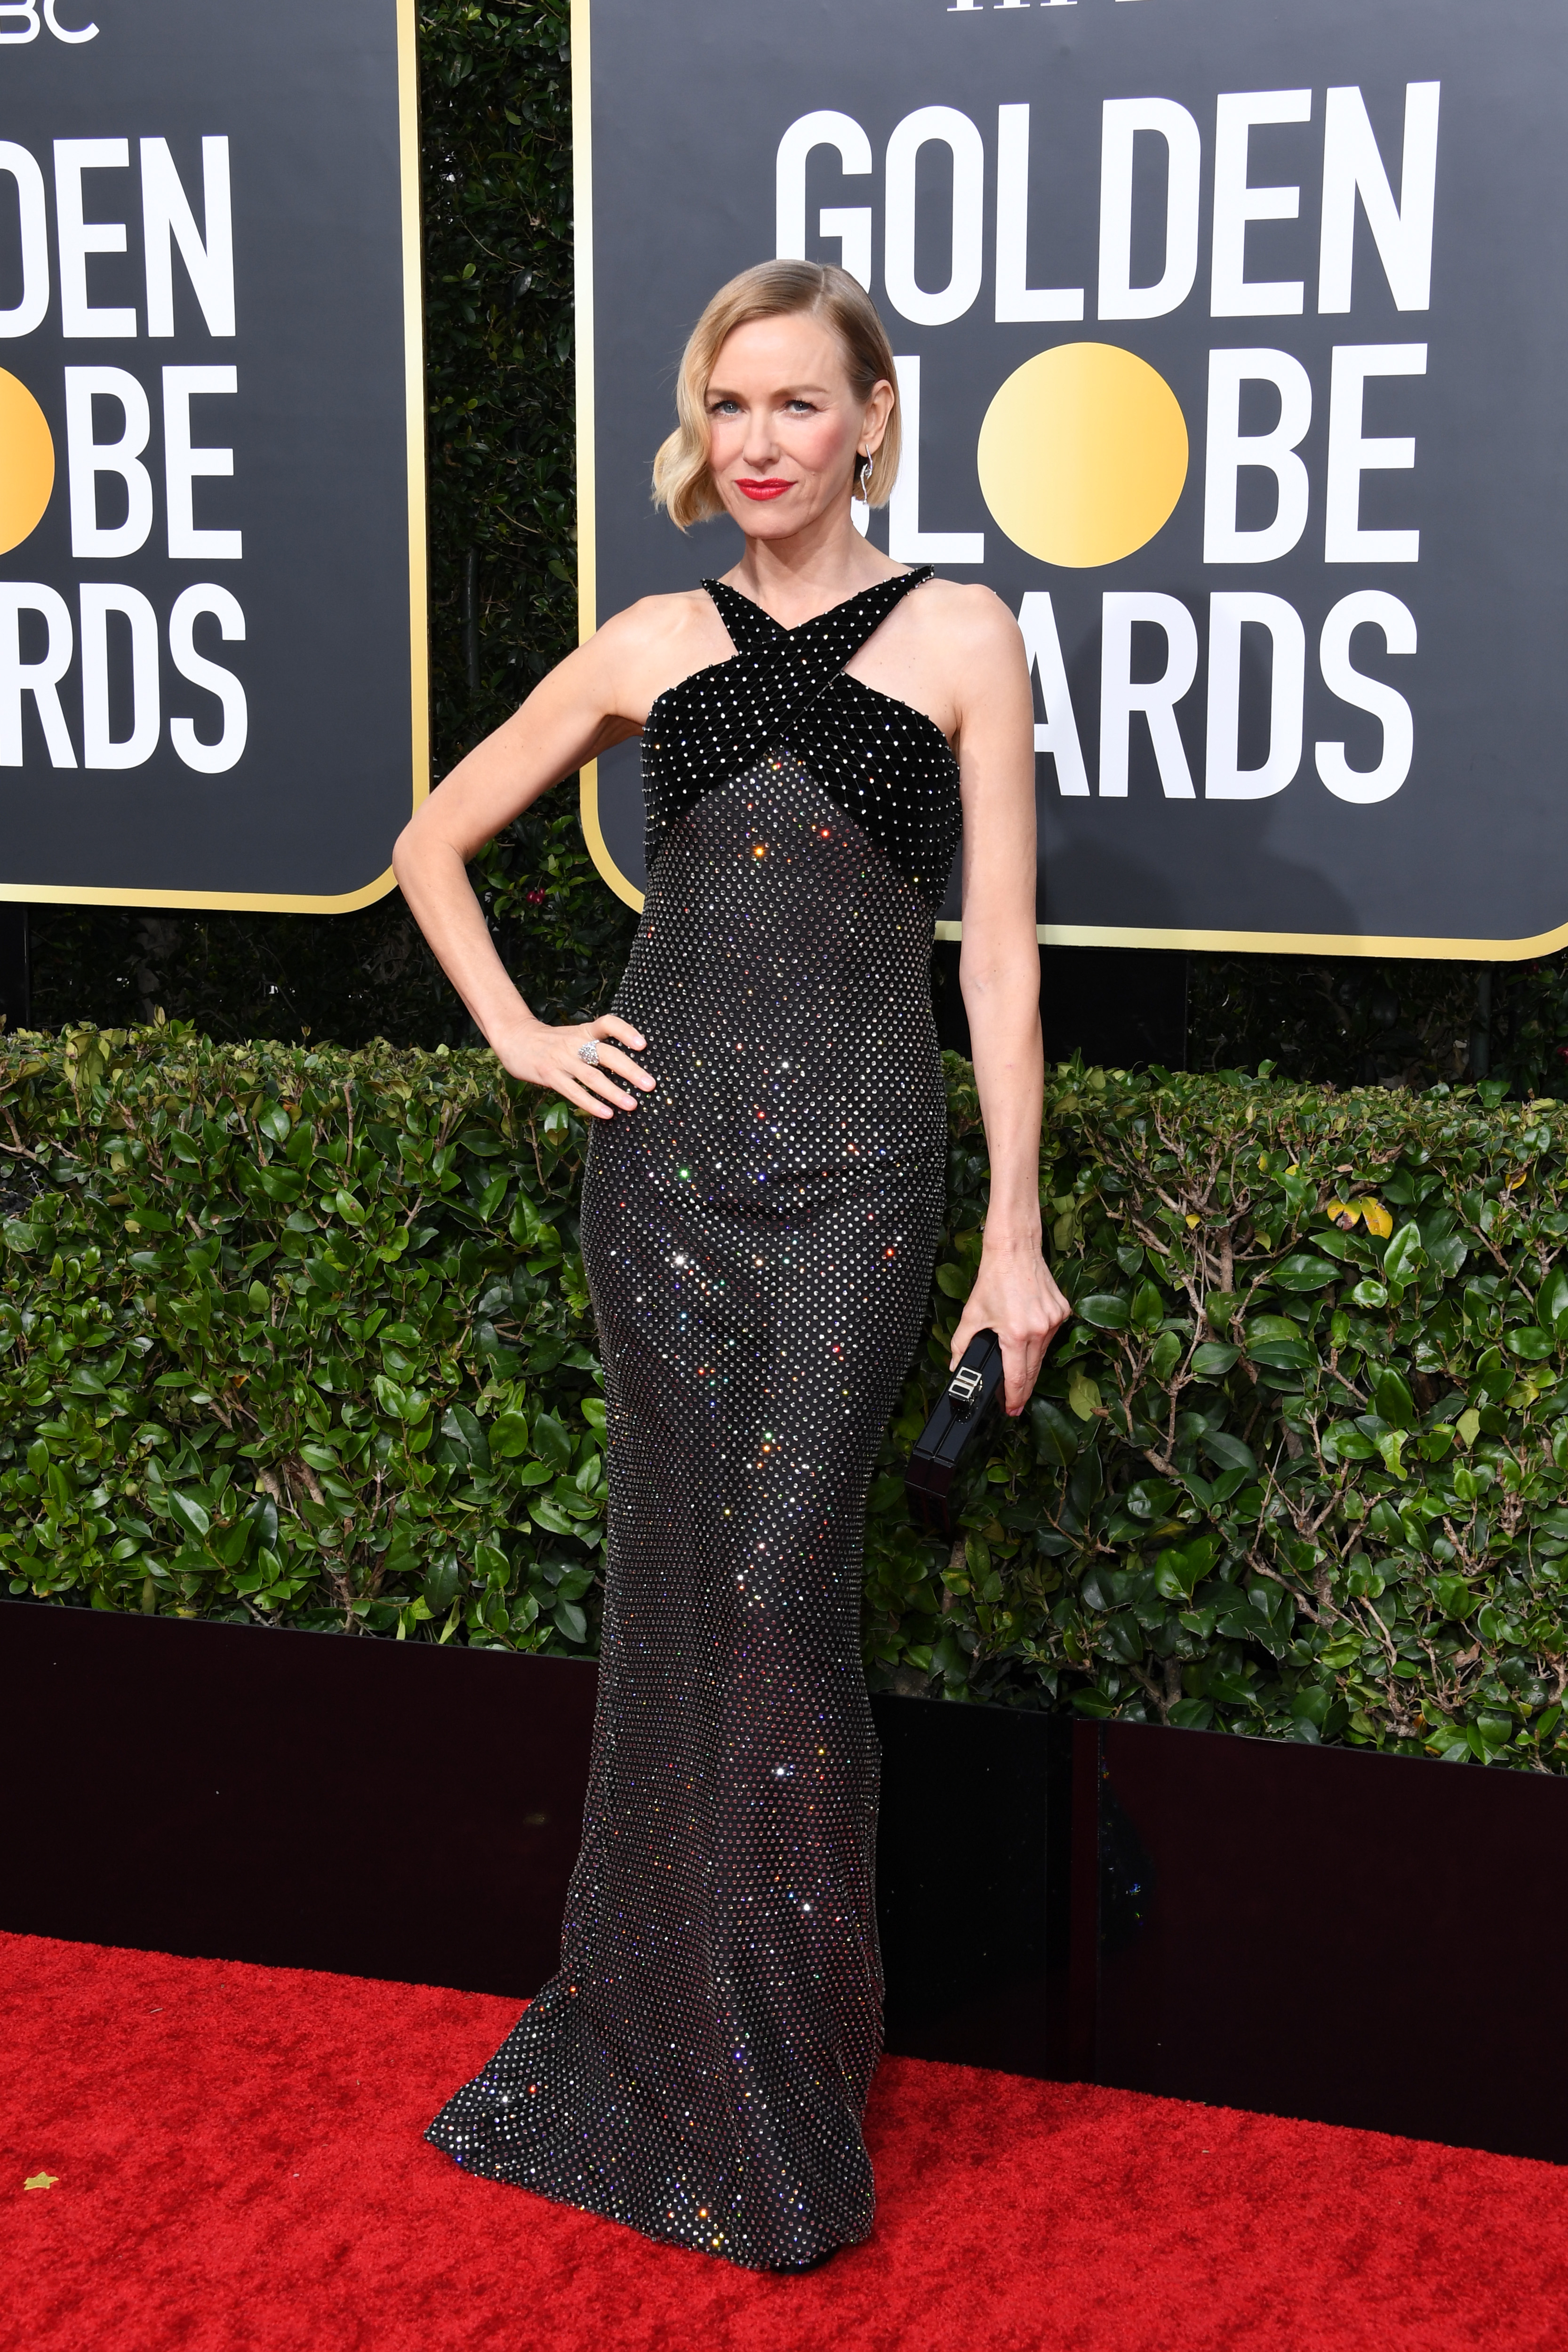 BEVERLY HILLS, CALIFORNIA - JANUARY 05: Naomi Watts attends the 77th Annual Golden Globe Awards at The Beverly Hilton Hotel on January 05, 2020 in Beverly Hills, California. (Photo by Jon Kopaloff/Getty Images)